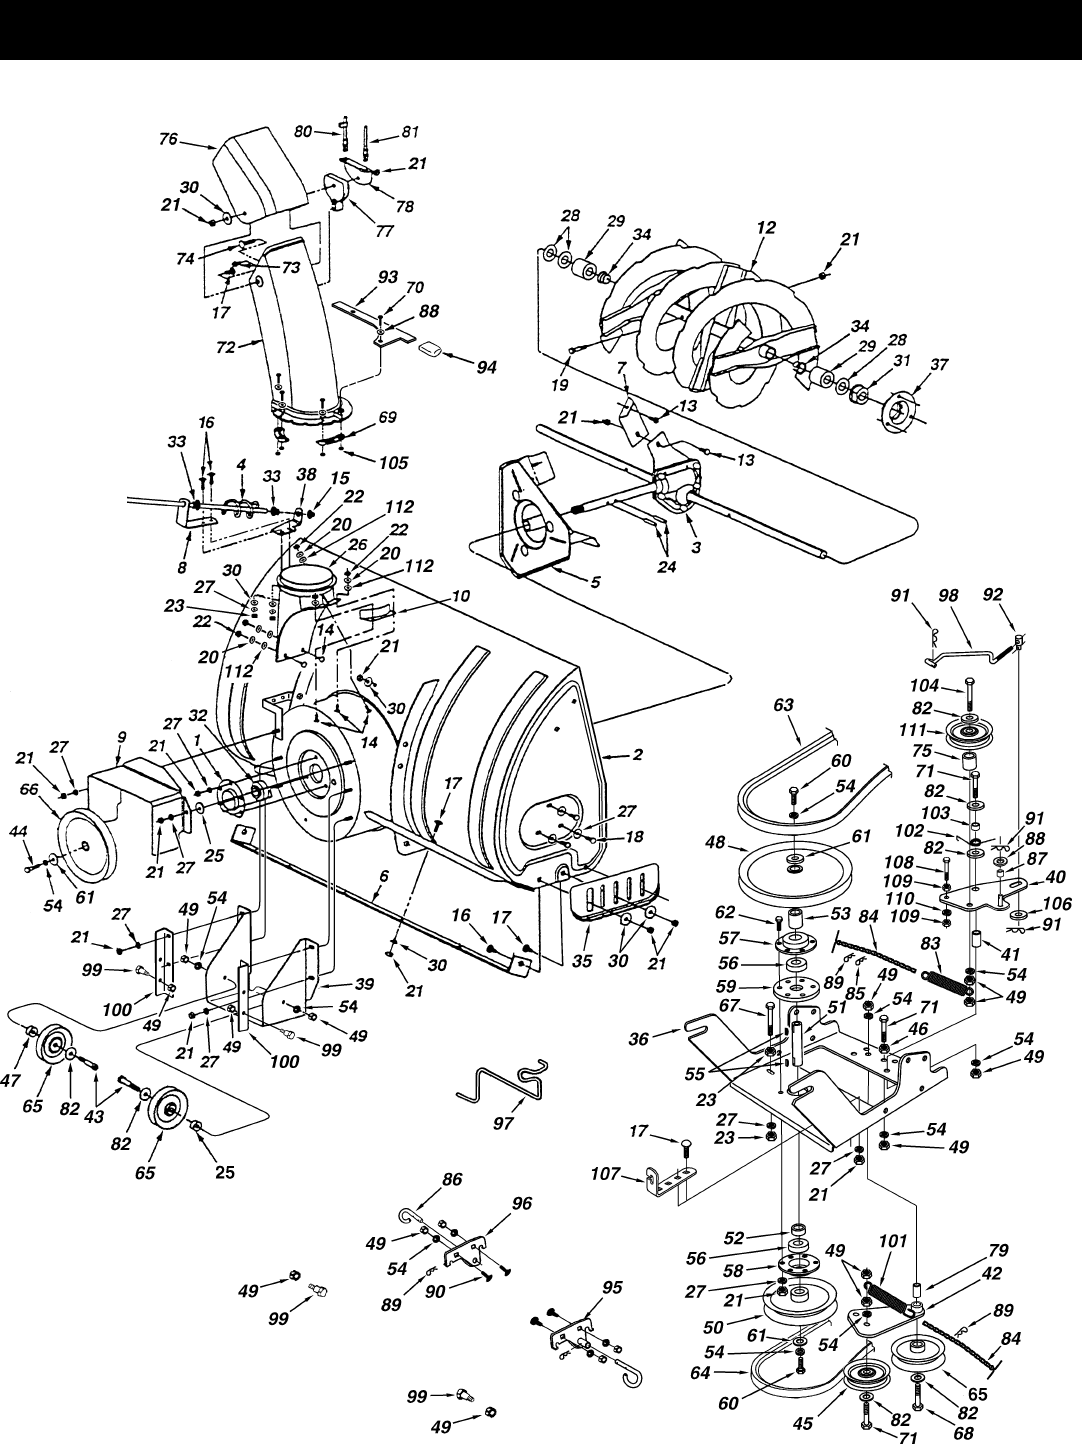 Page 22 of Sears Snow Blower 486.248392 User Guide